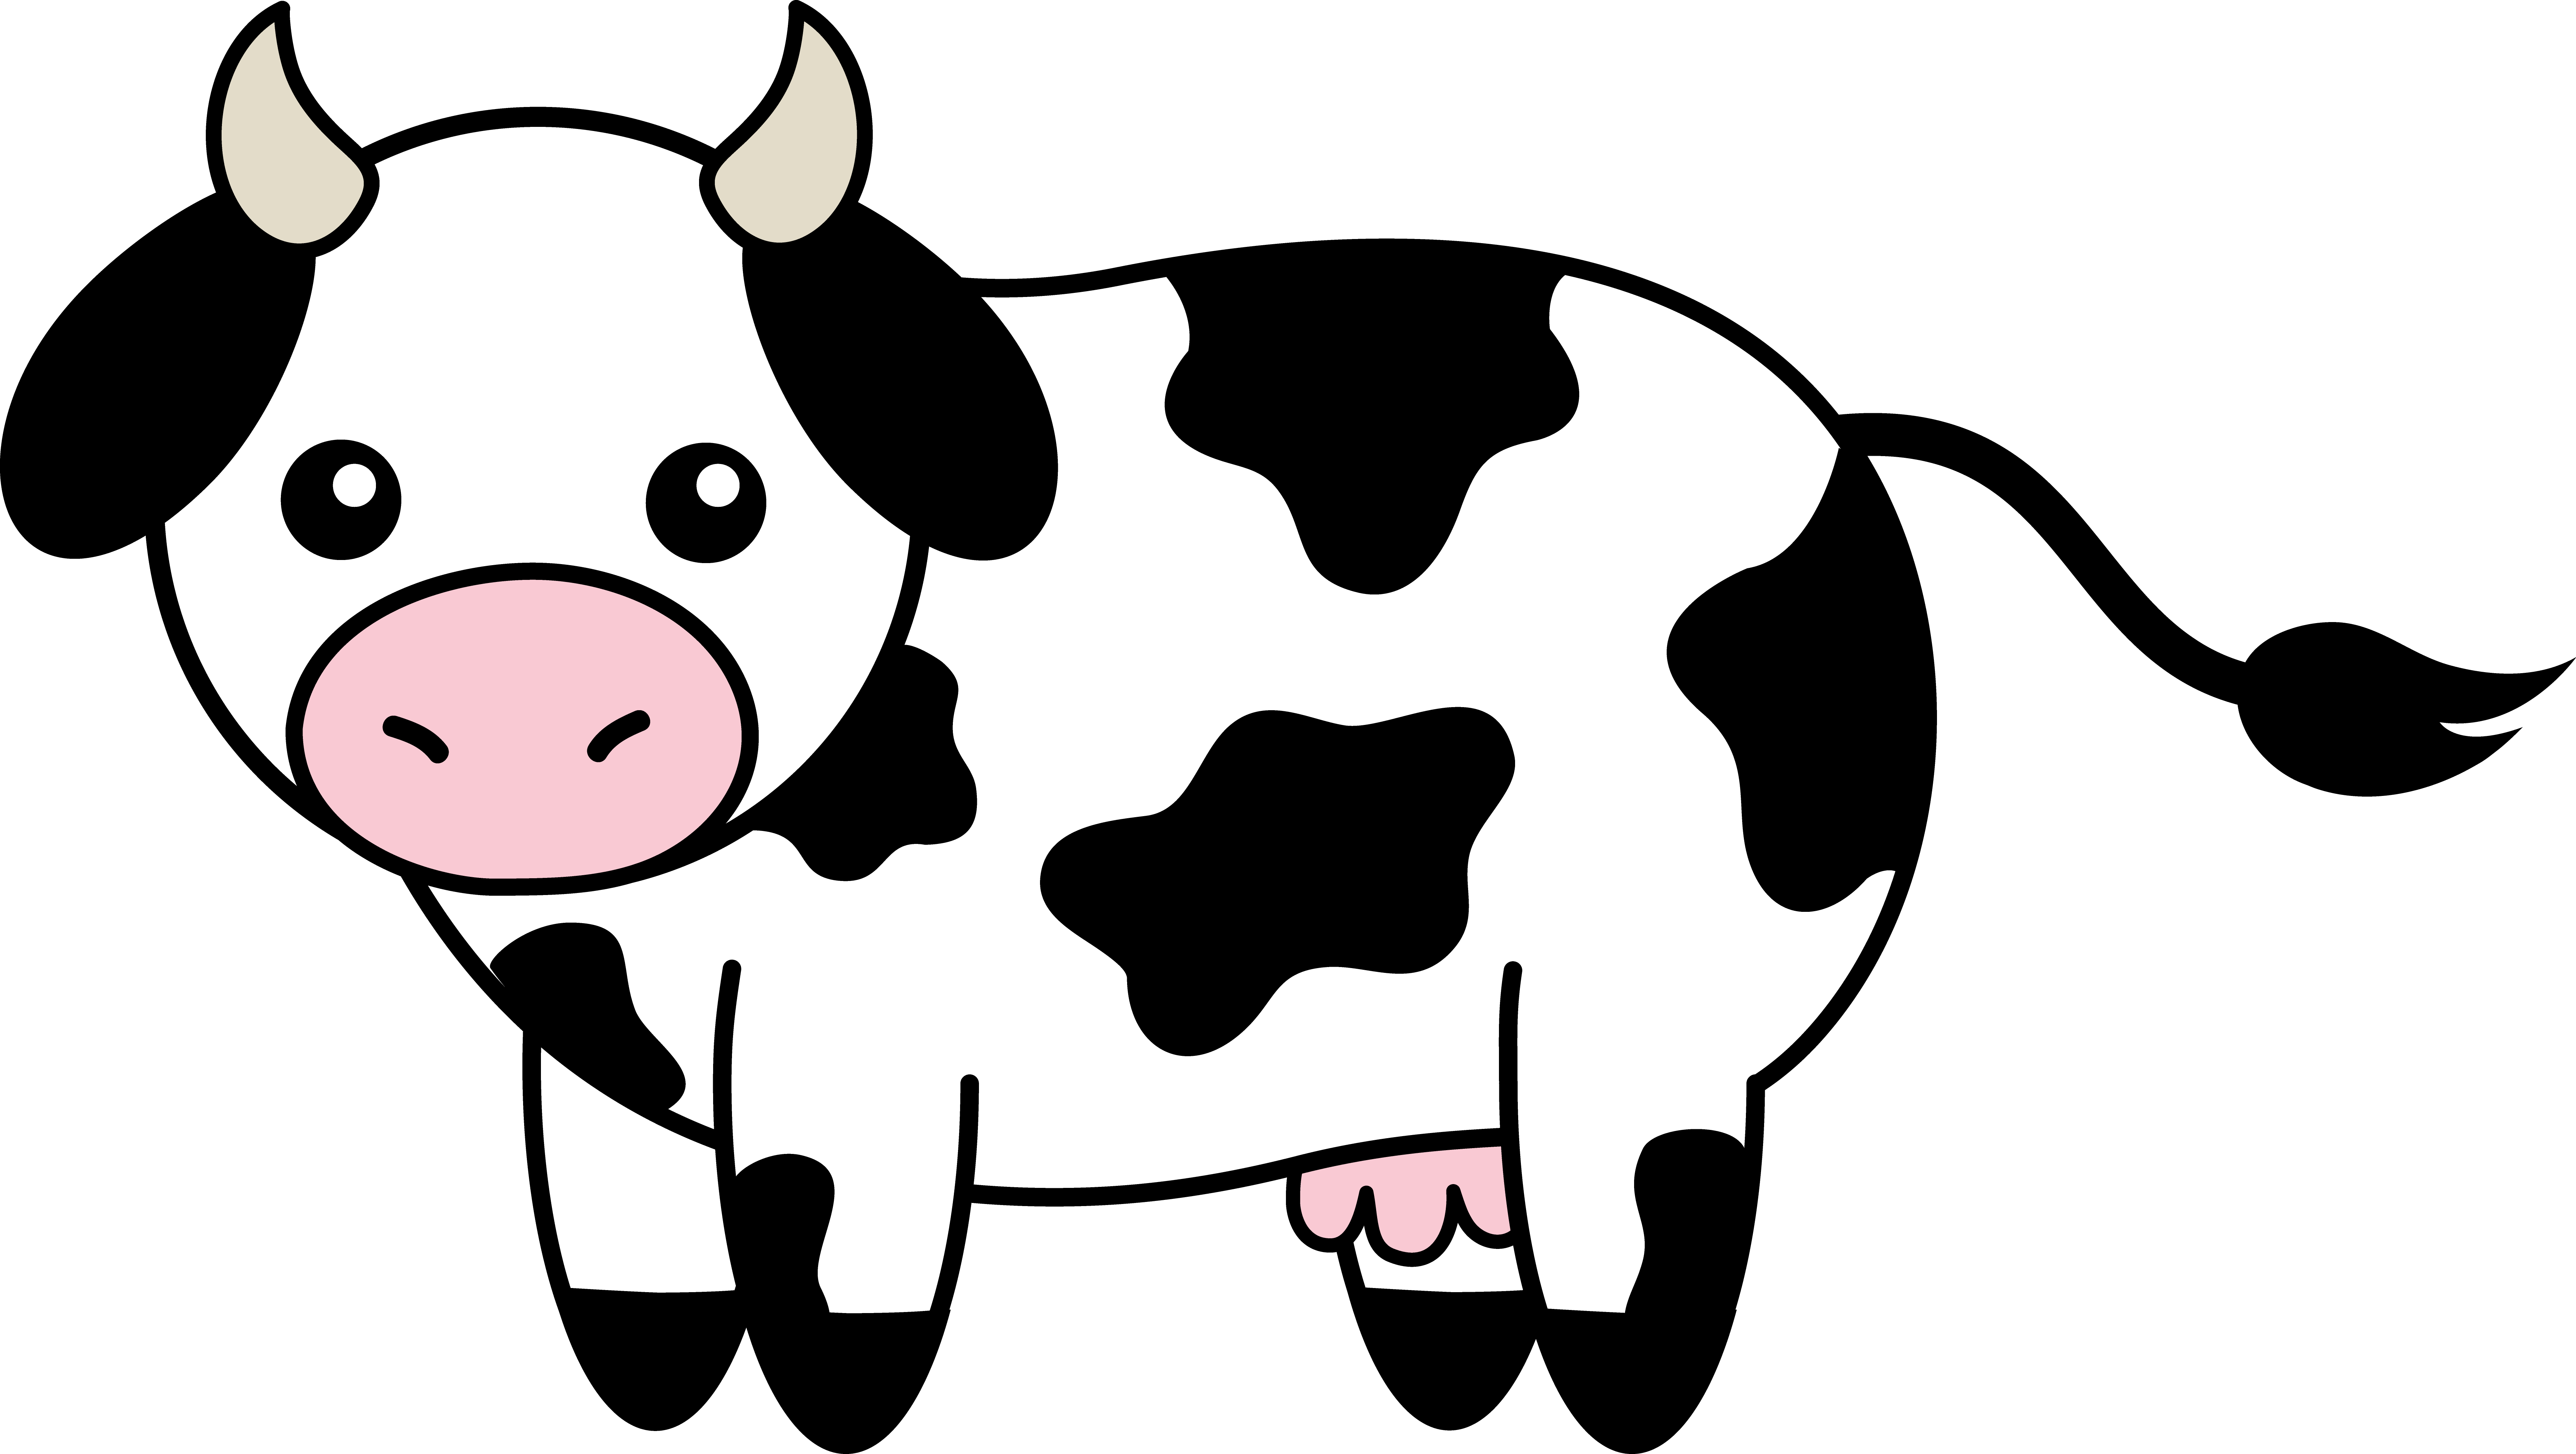 Cow Clipart Black And White | Clipart library - Free Clipart Images